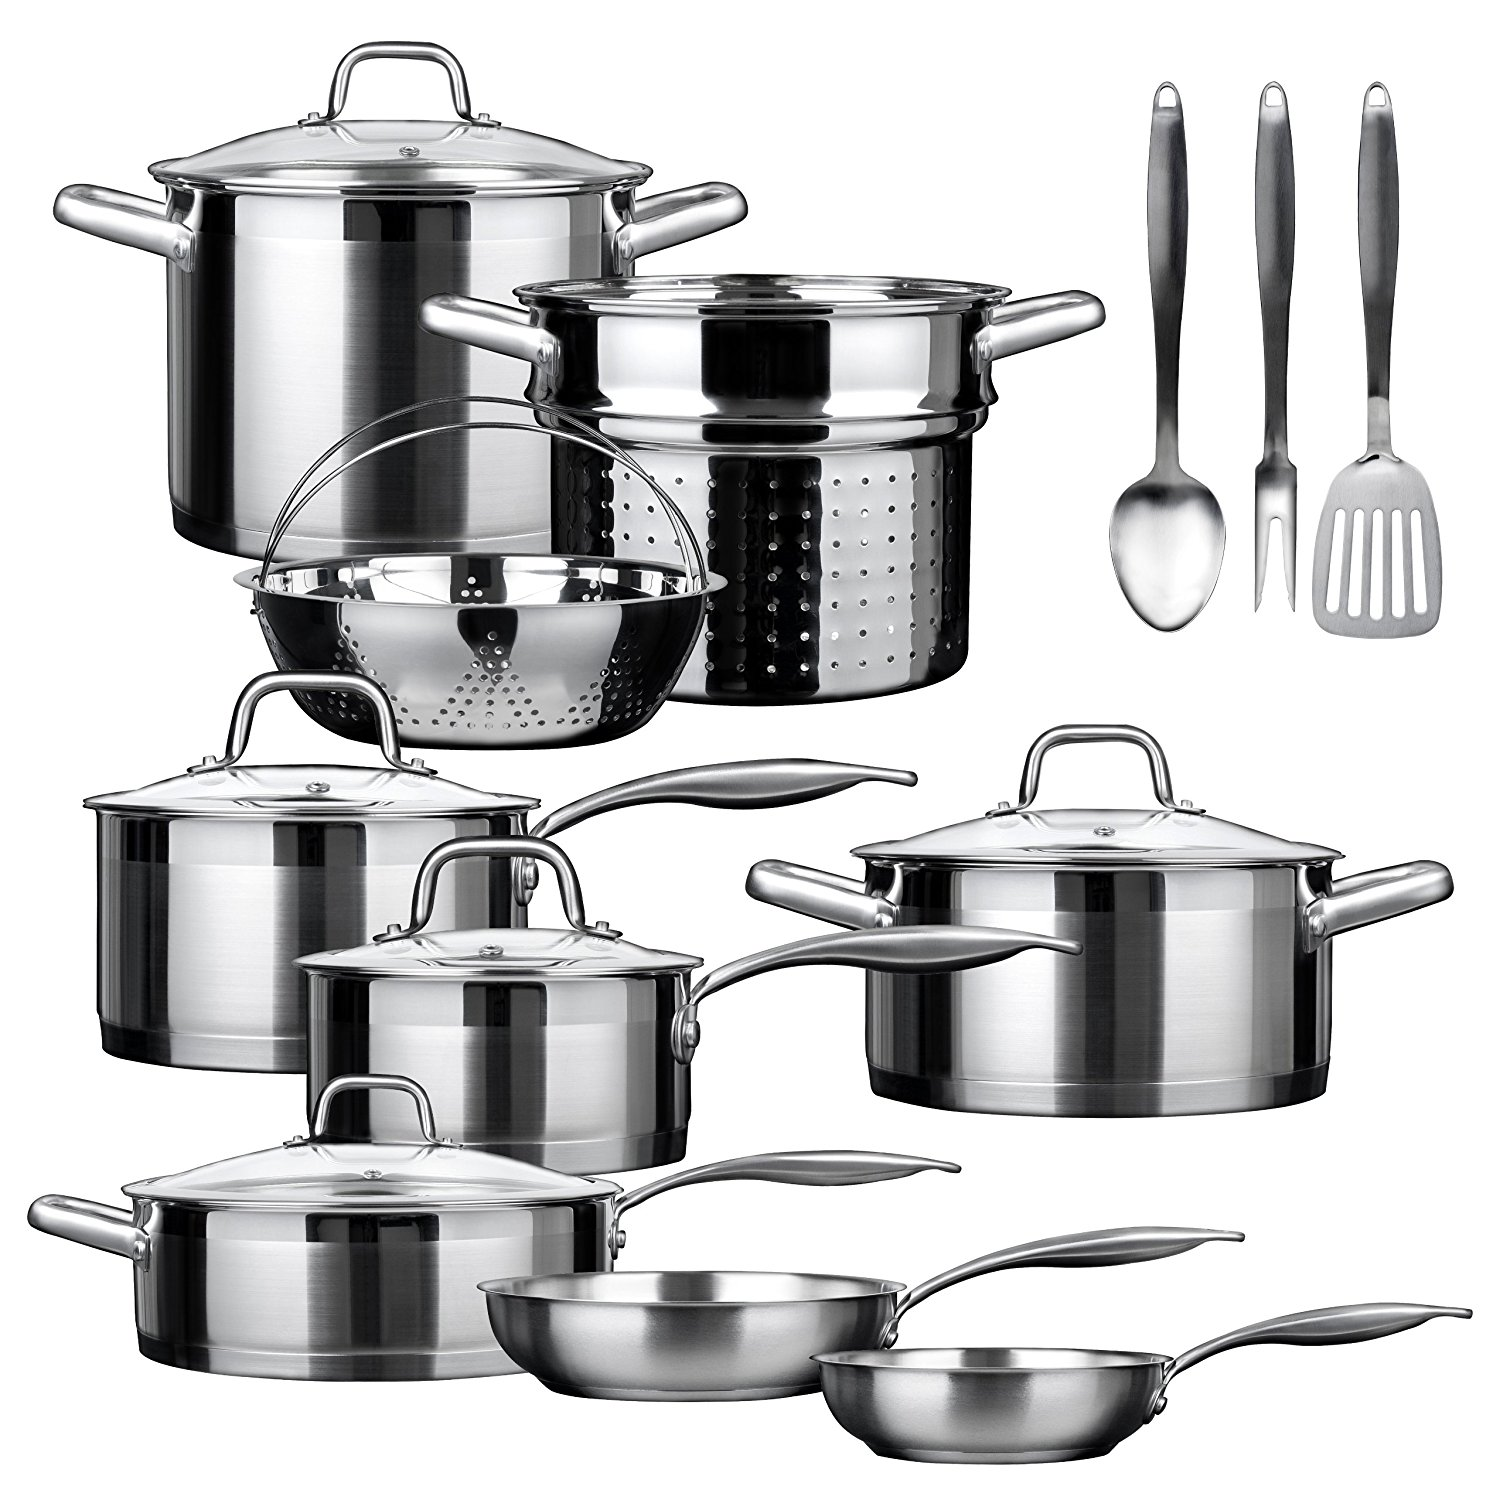 Duxtop - Secura SSIB-17 Induction Cookware Set